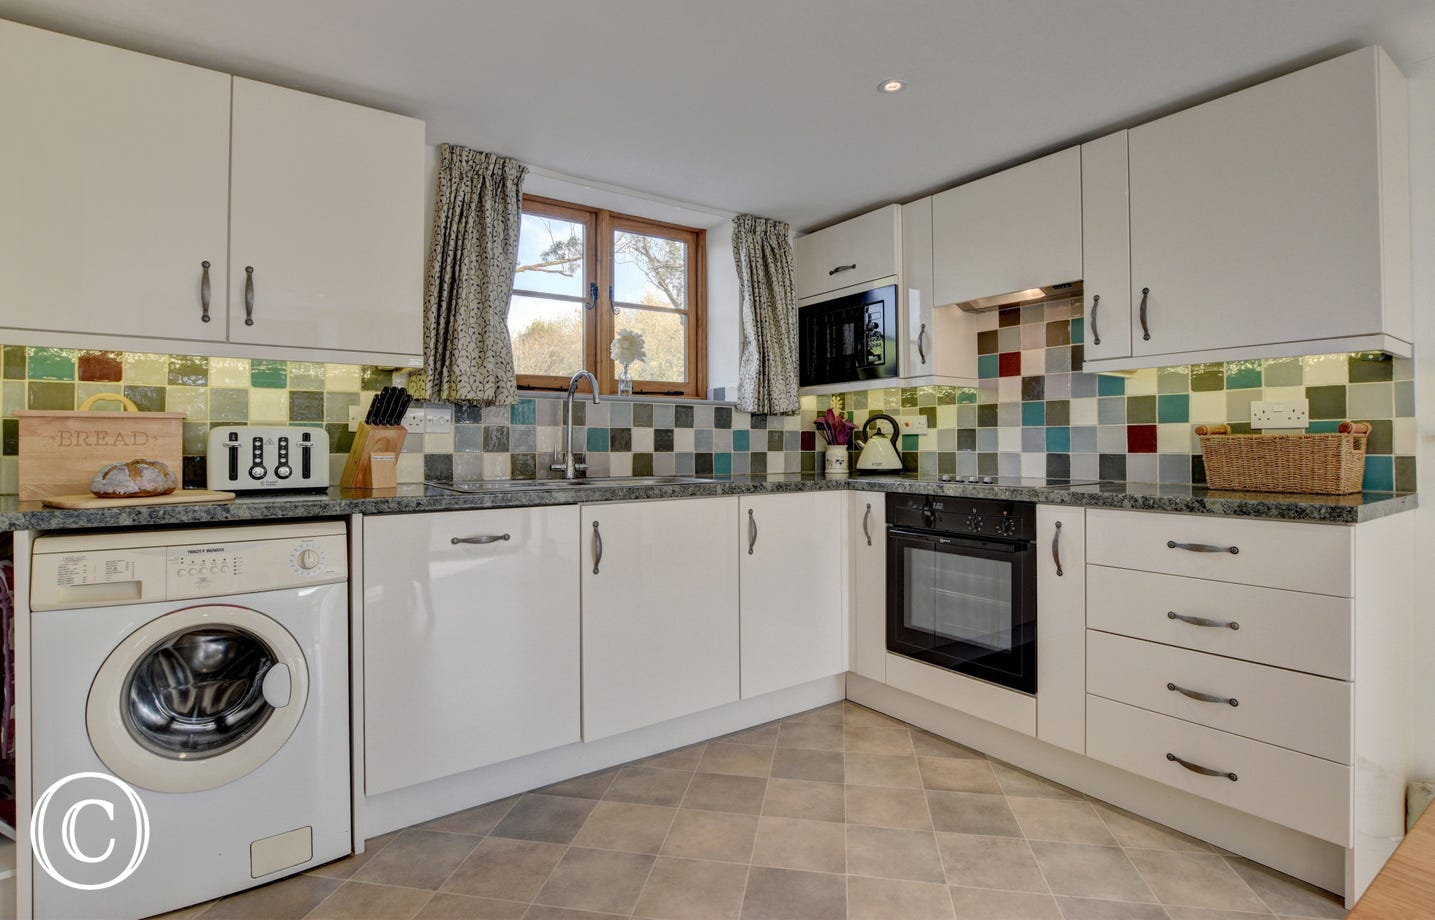 Kitchen/diner with electric hob and oven, microwave, fridge/freezer, washing machine and dishwasher